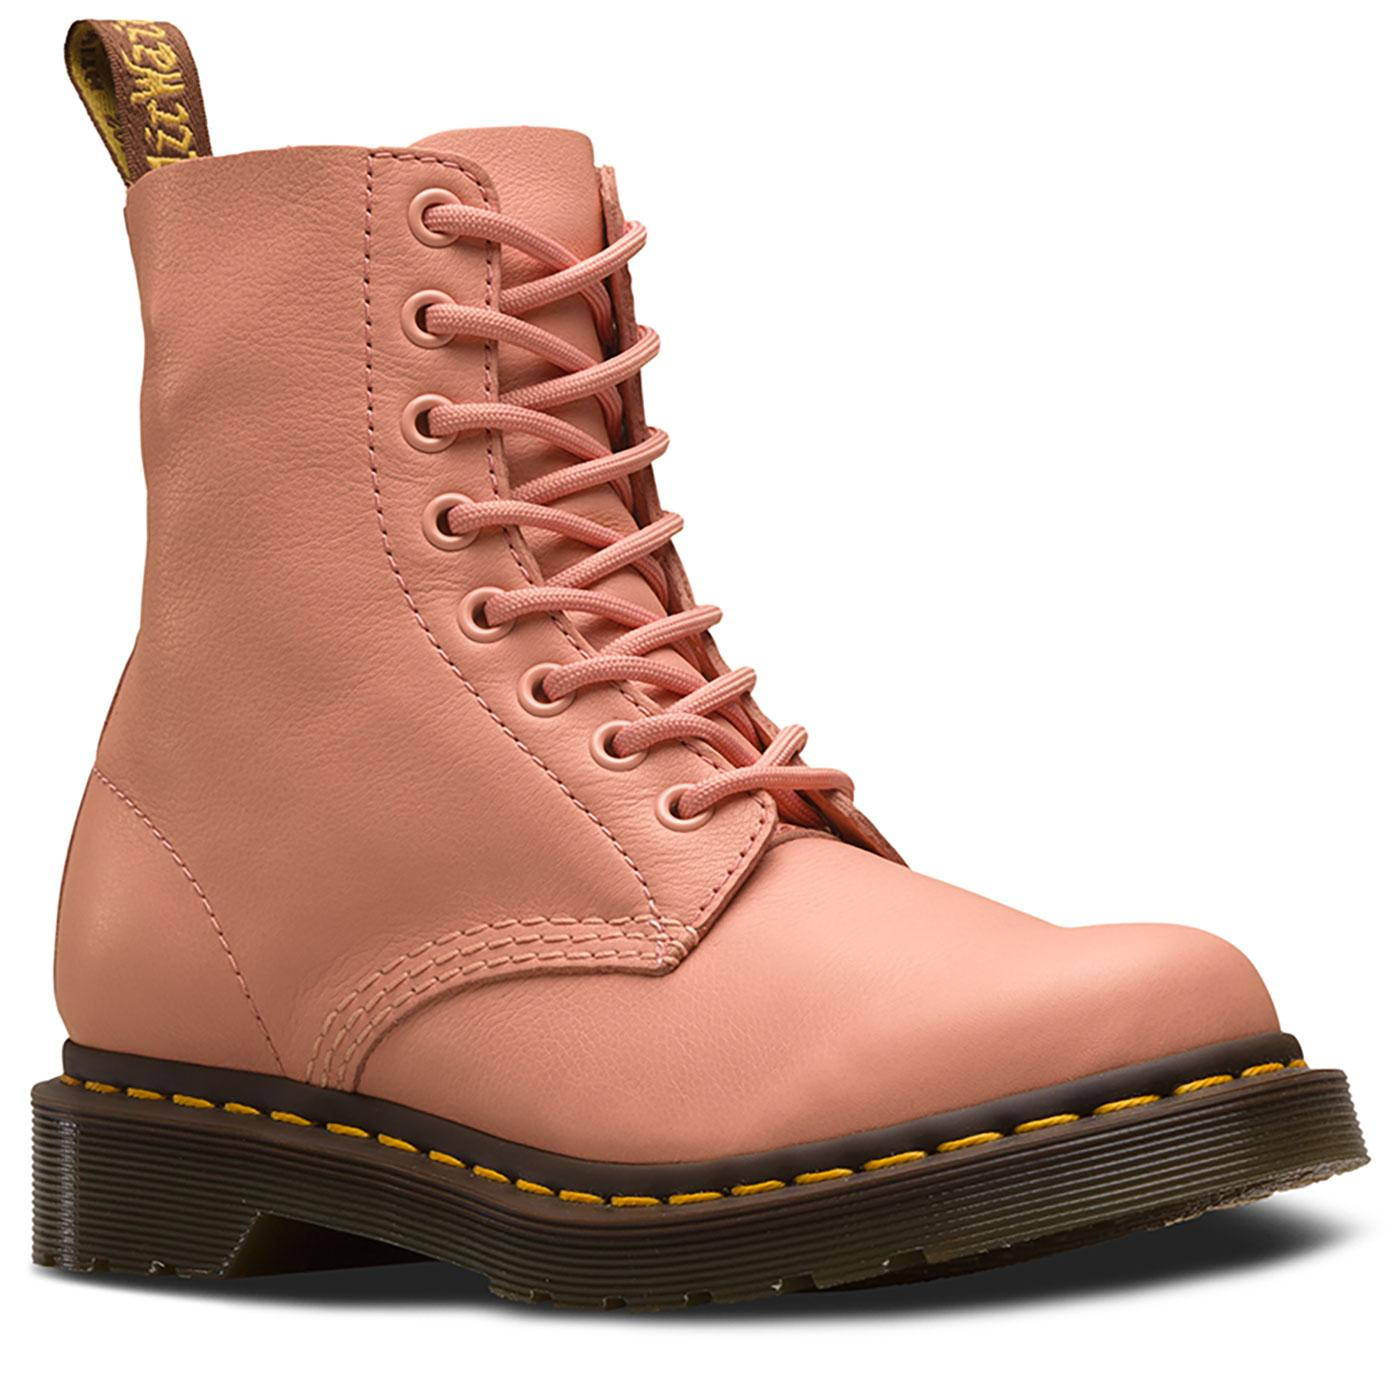 1460 Pascal Virginia DR MARTENS Women's Boots S